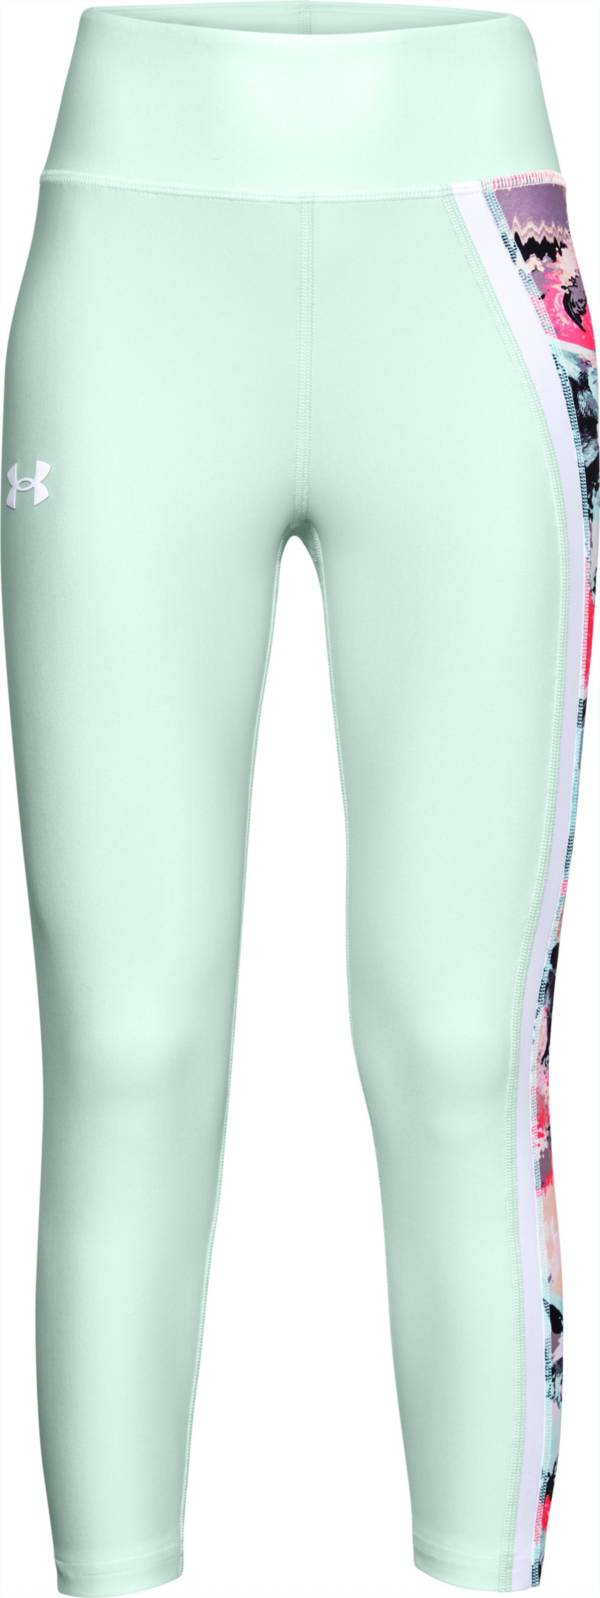 Under Armour Girls' Armour HeatGear Crop Leggings product image